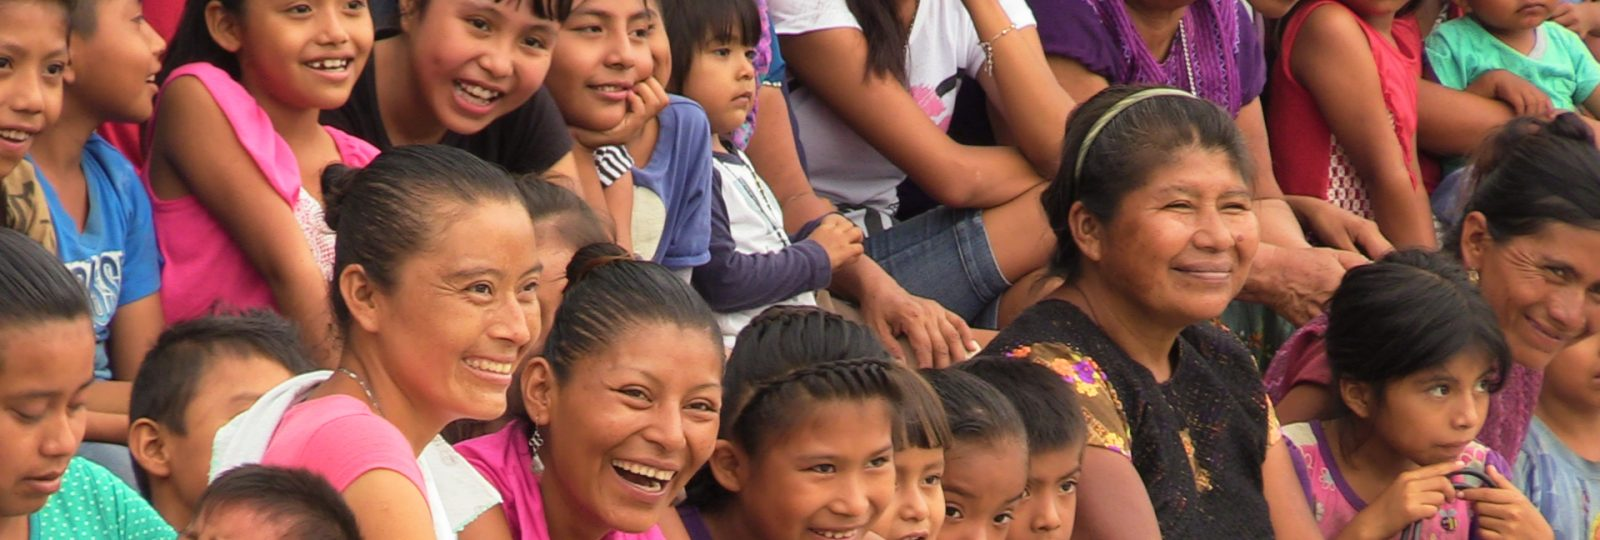 Parents and children laugh during a show in Mexico